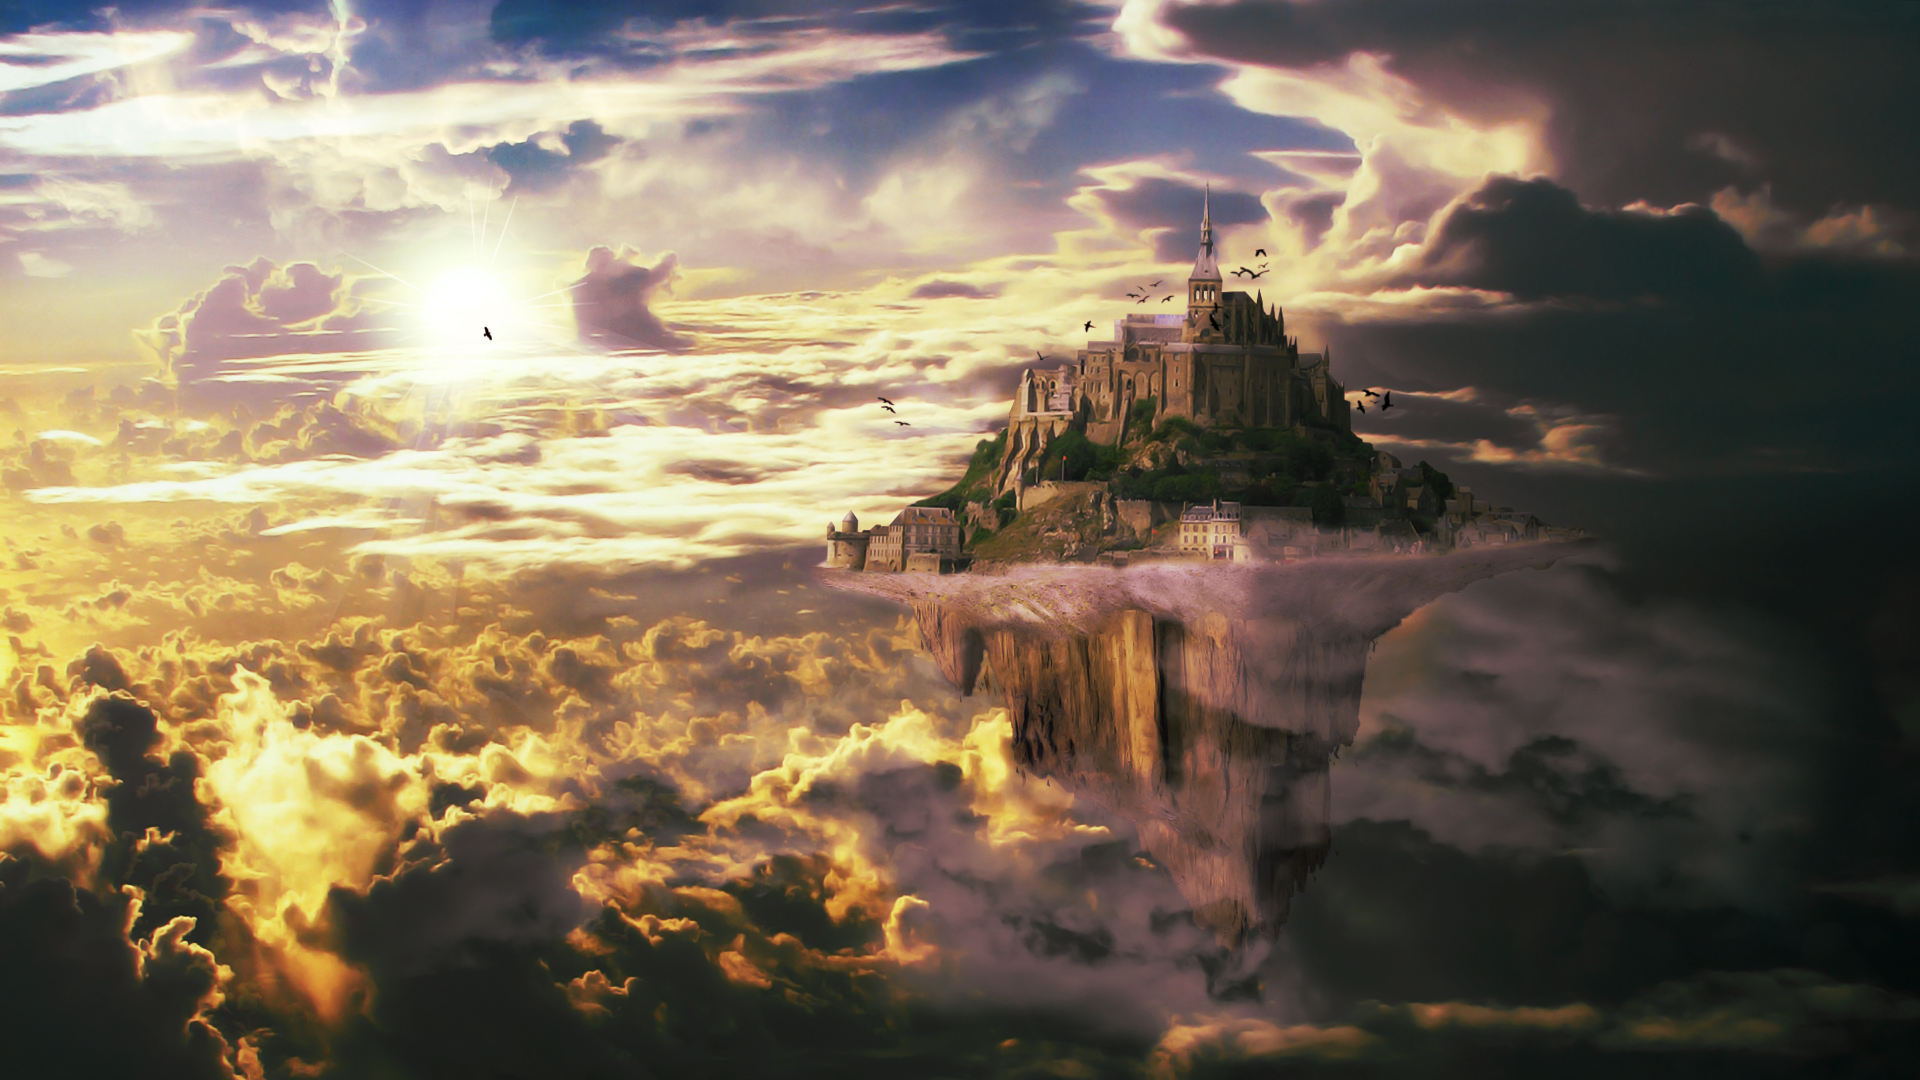 Skyland wallpaper by appoh on deviantart - Fantasy land wallpaper ...